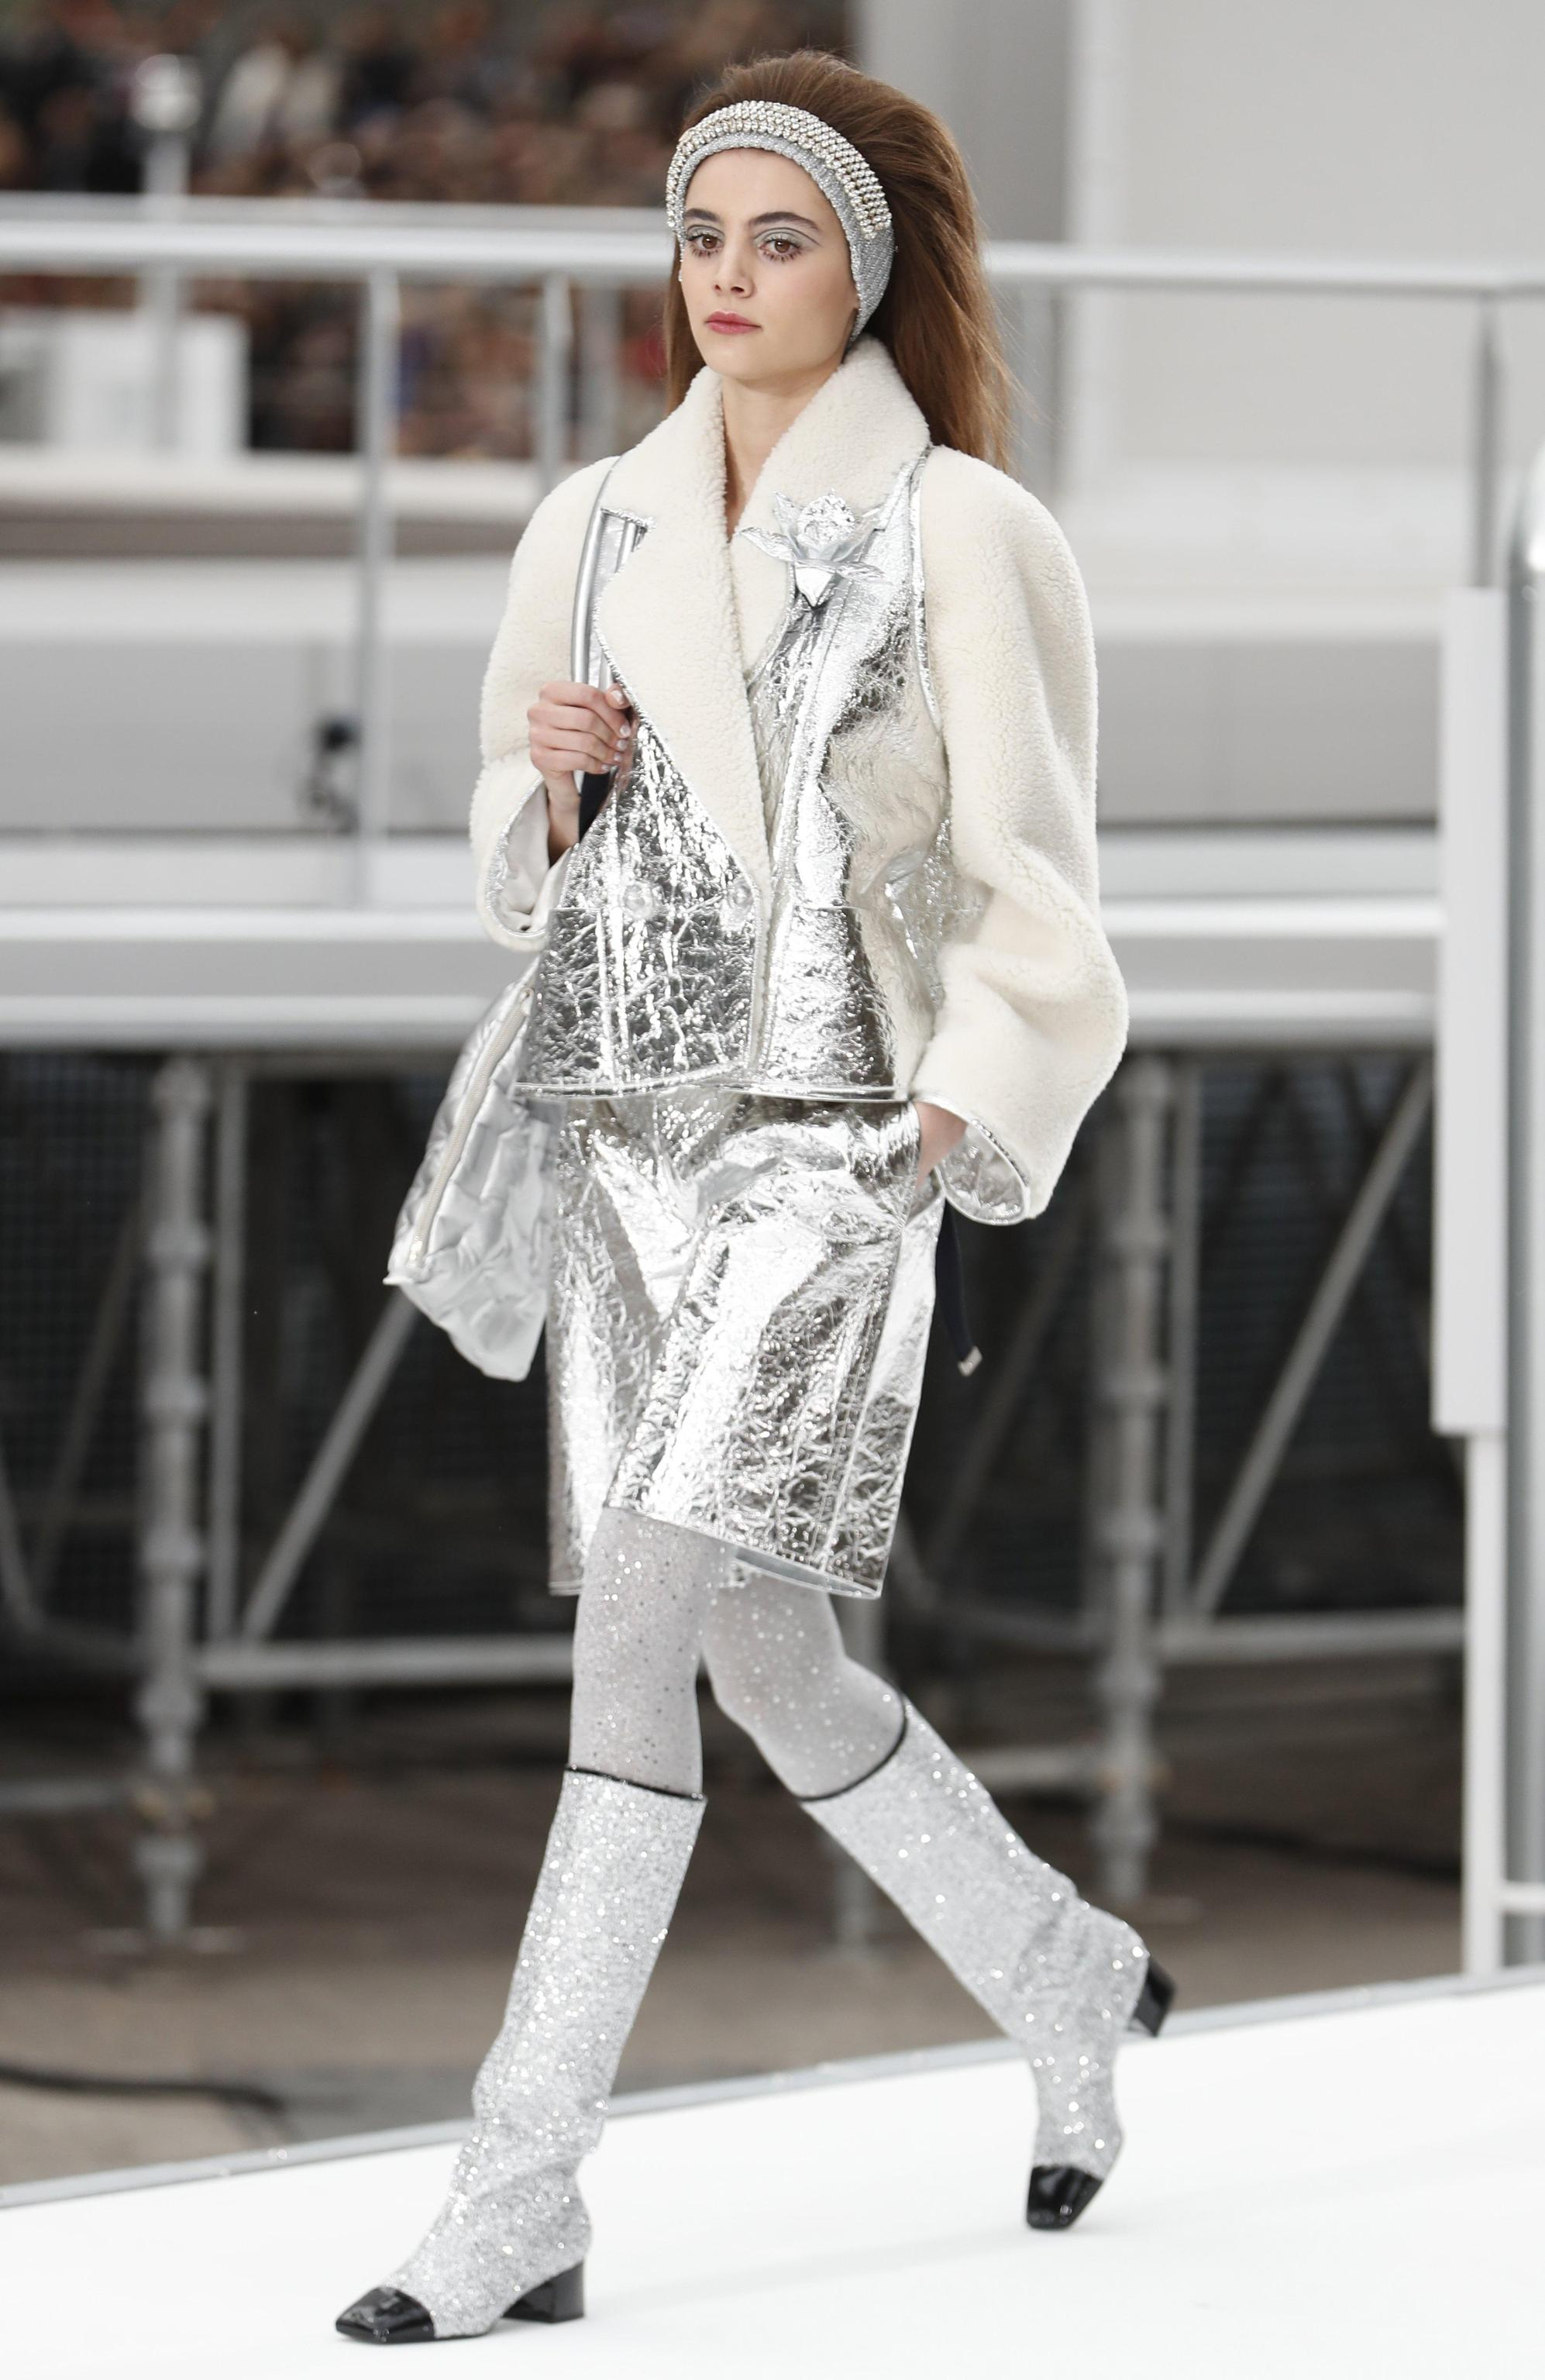 Chanel Runway Ready to wear Paris Fashion Week F/W 2017/18